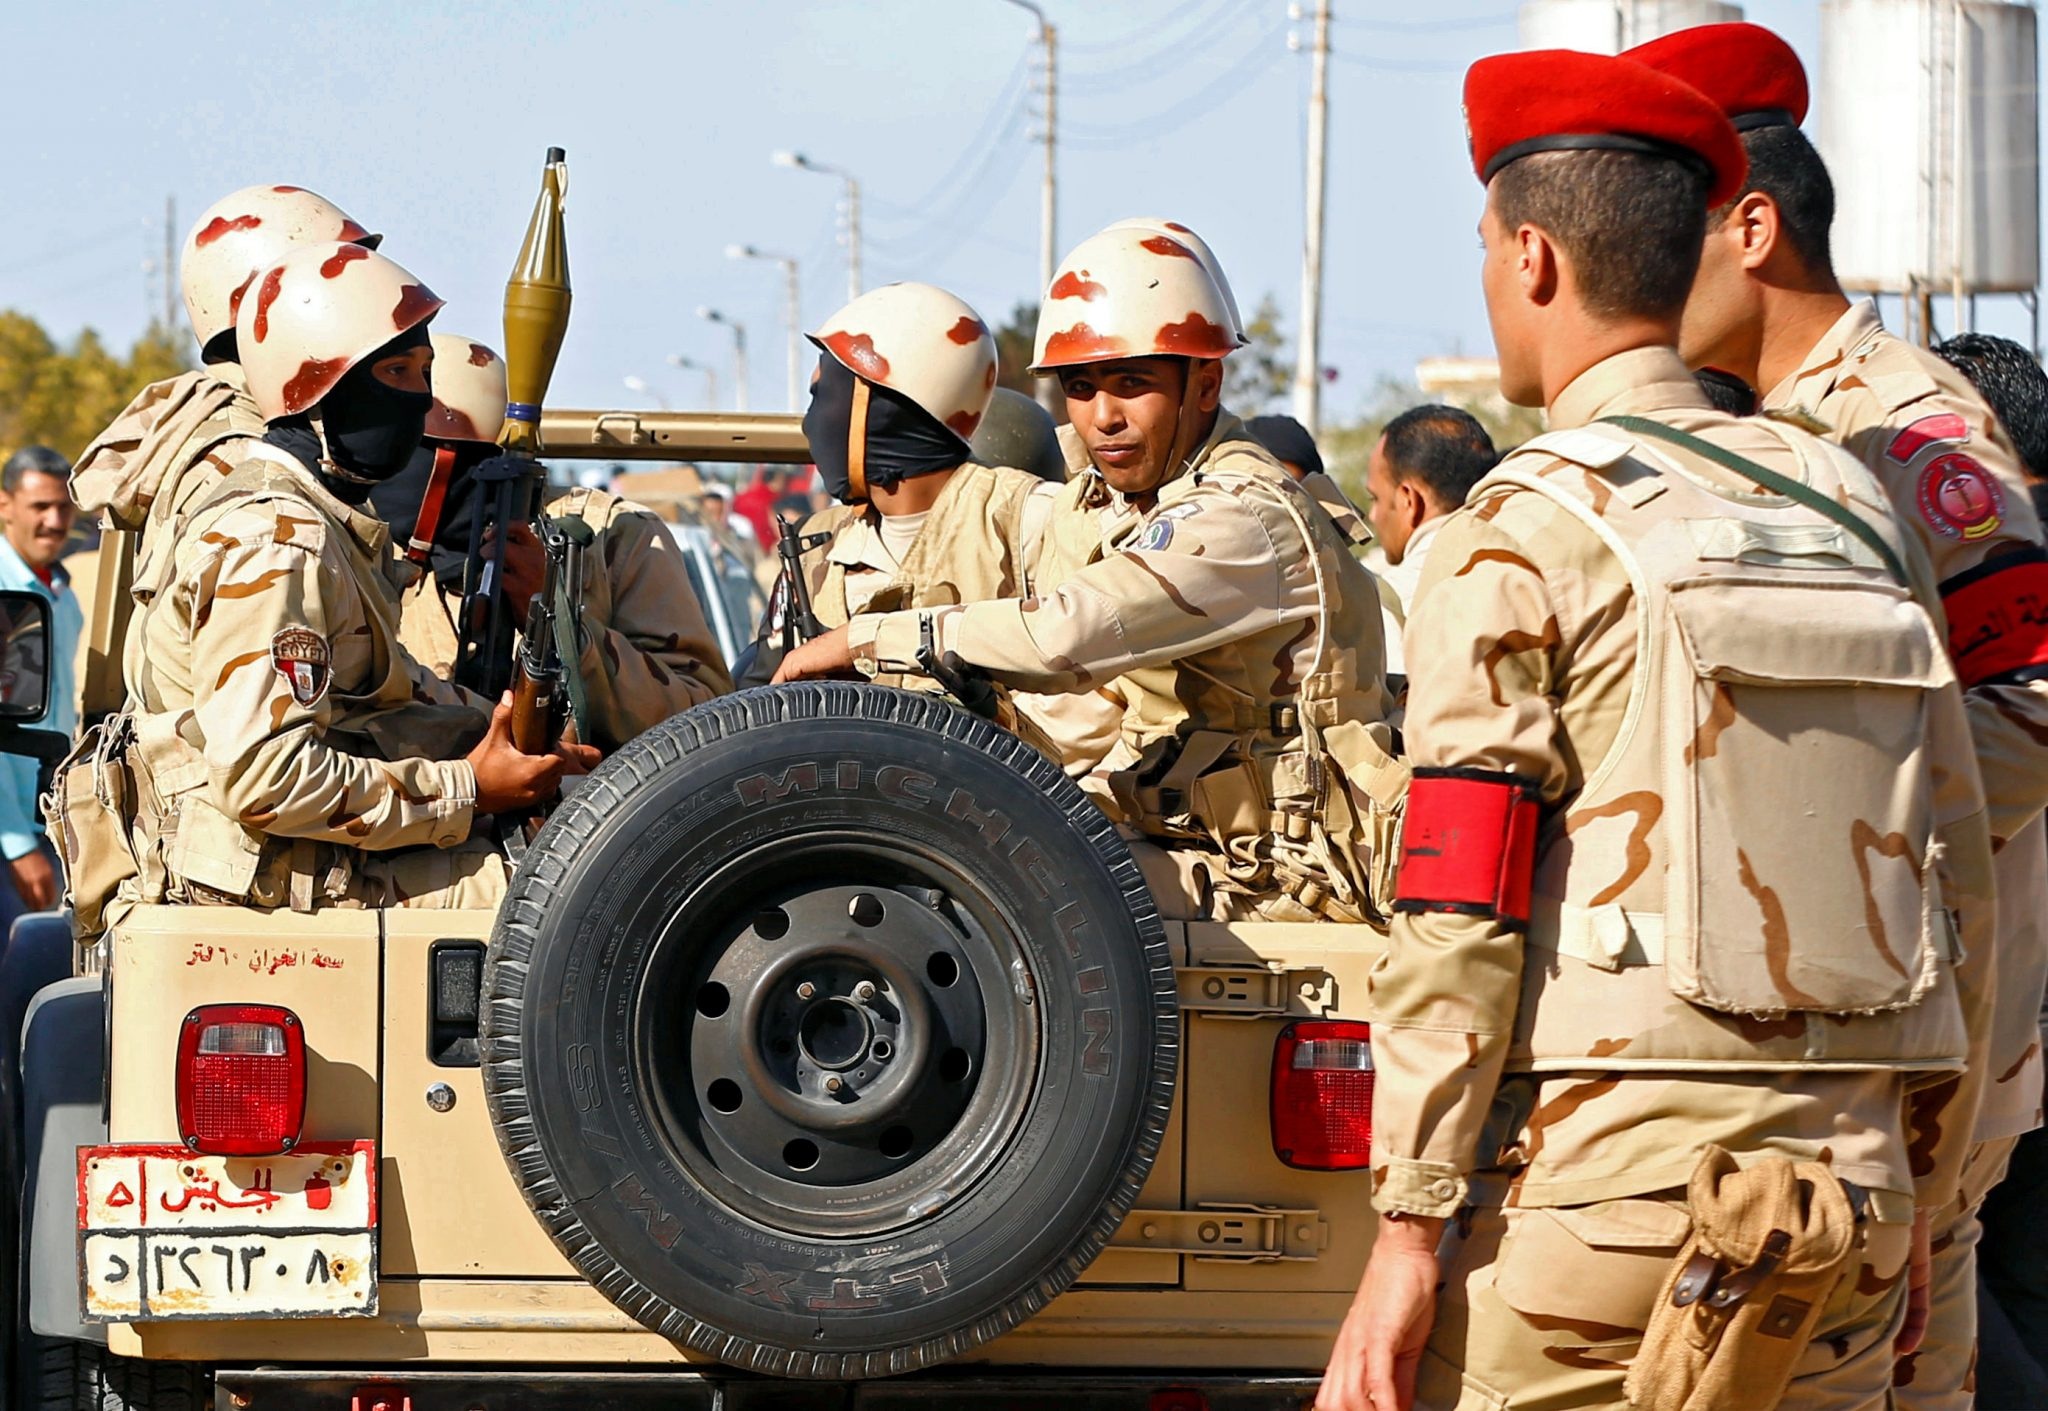 Egyptian military conducting counter-terrorism operations pre-national elections: Military forces look on in North Sinai | REUTERS